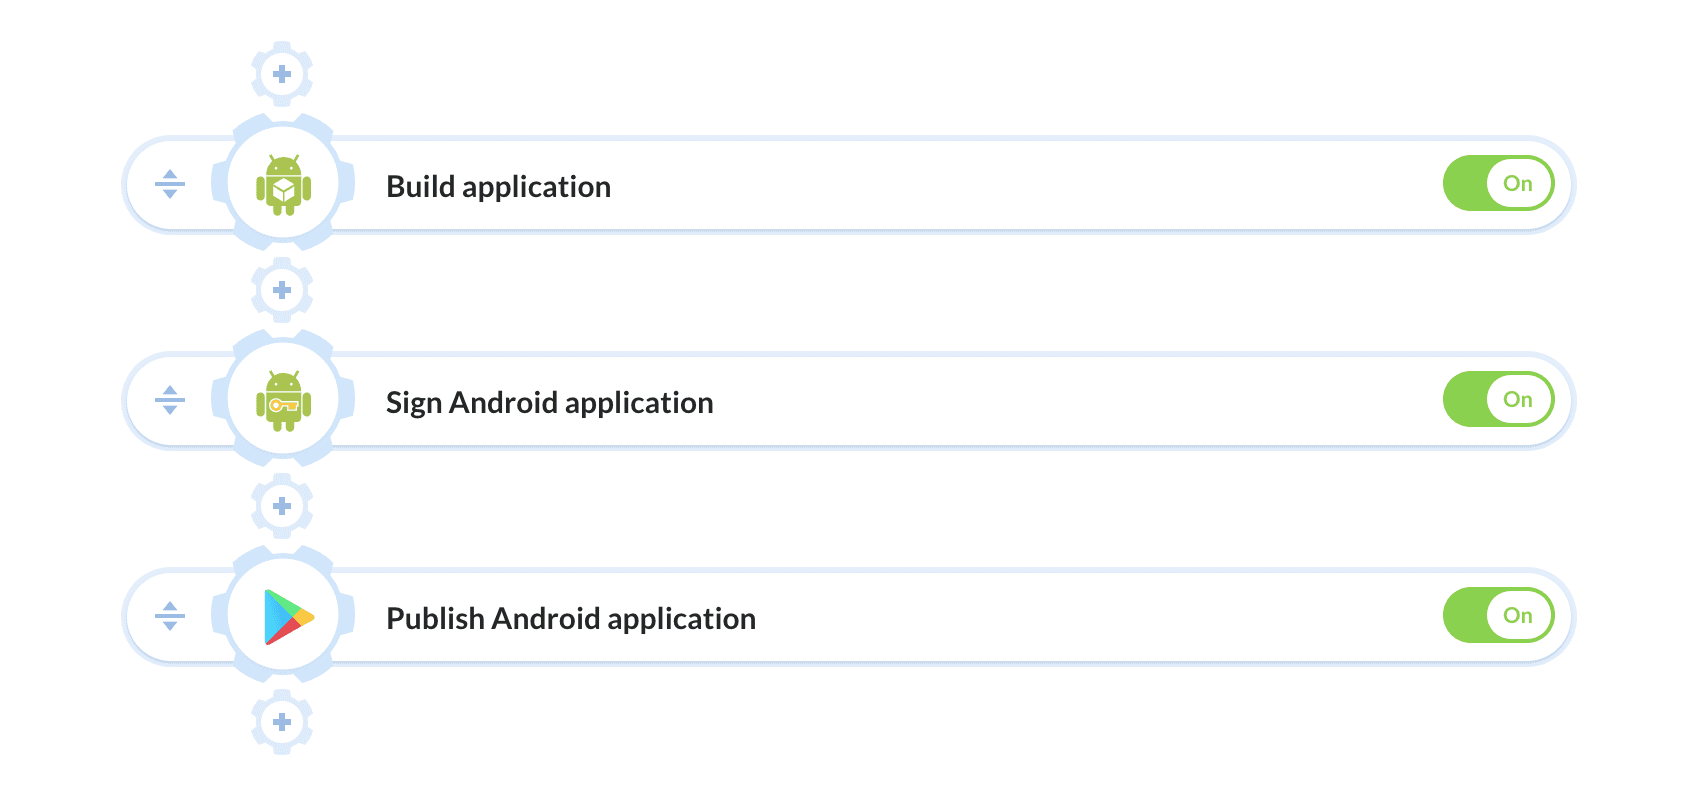 Continuous Integration & Deployment for Android apps | Buddy: The